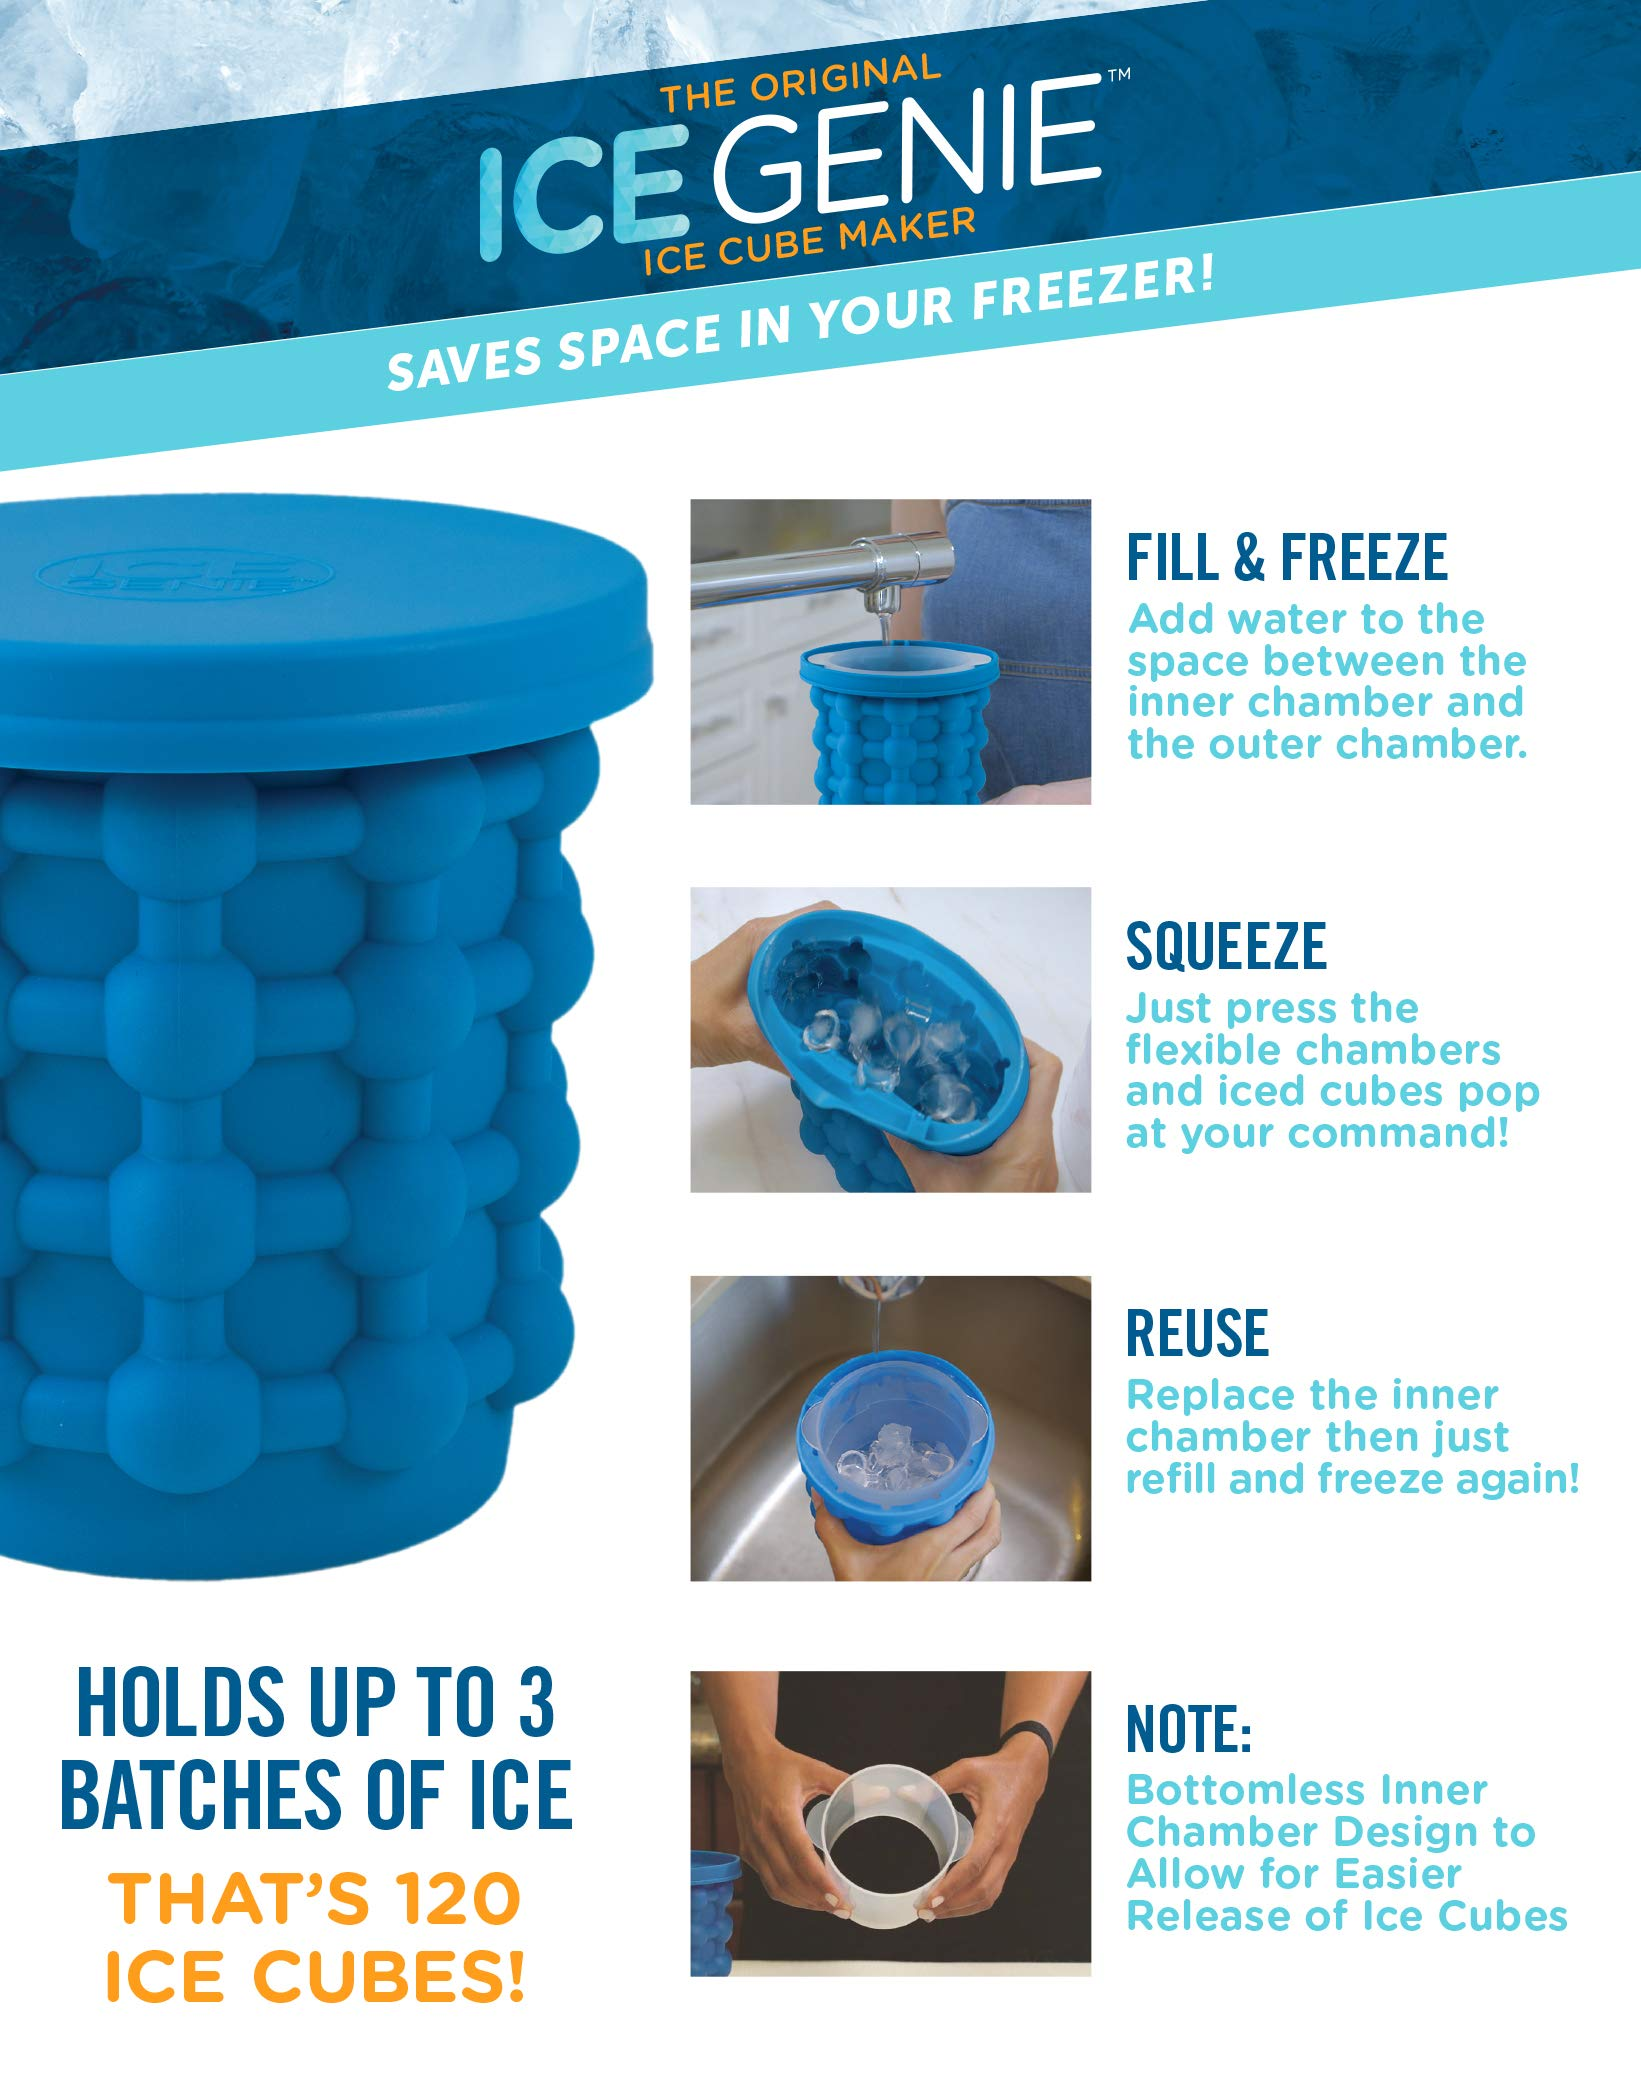 The original ICE GENIE Ice Cube Maker! Space Saving Ice Cube Maker, Holds up to 120 Ice Cubes (Ice Genie, Ice Tongs)